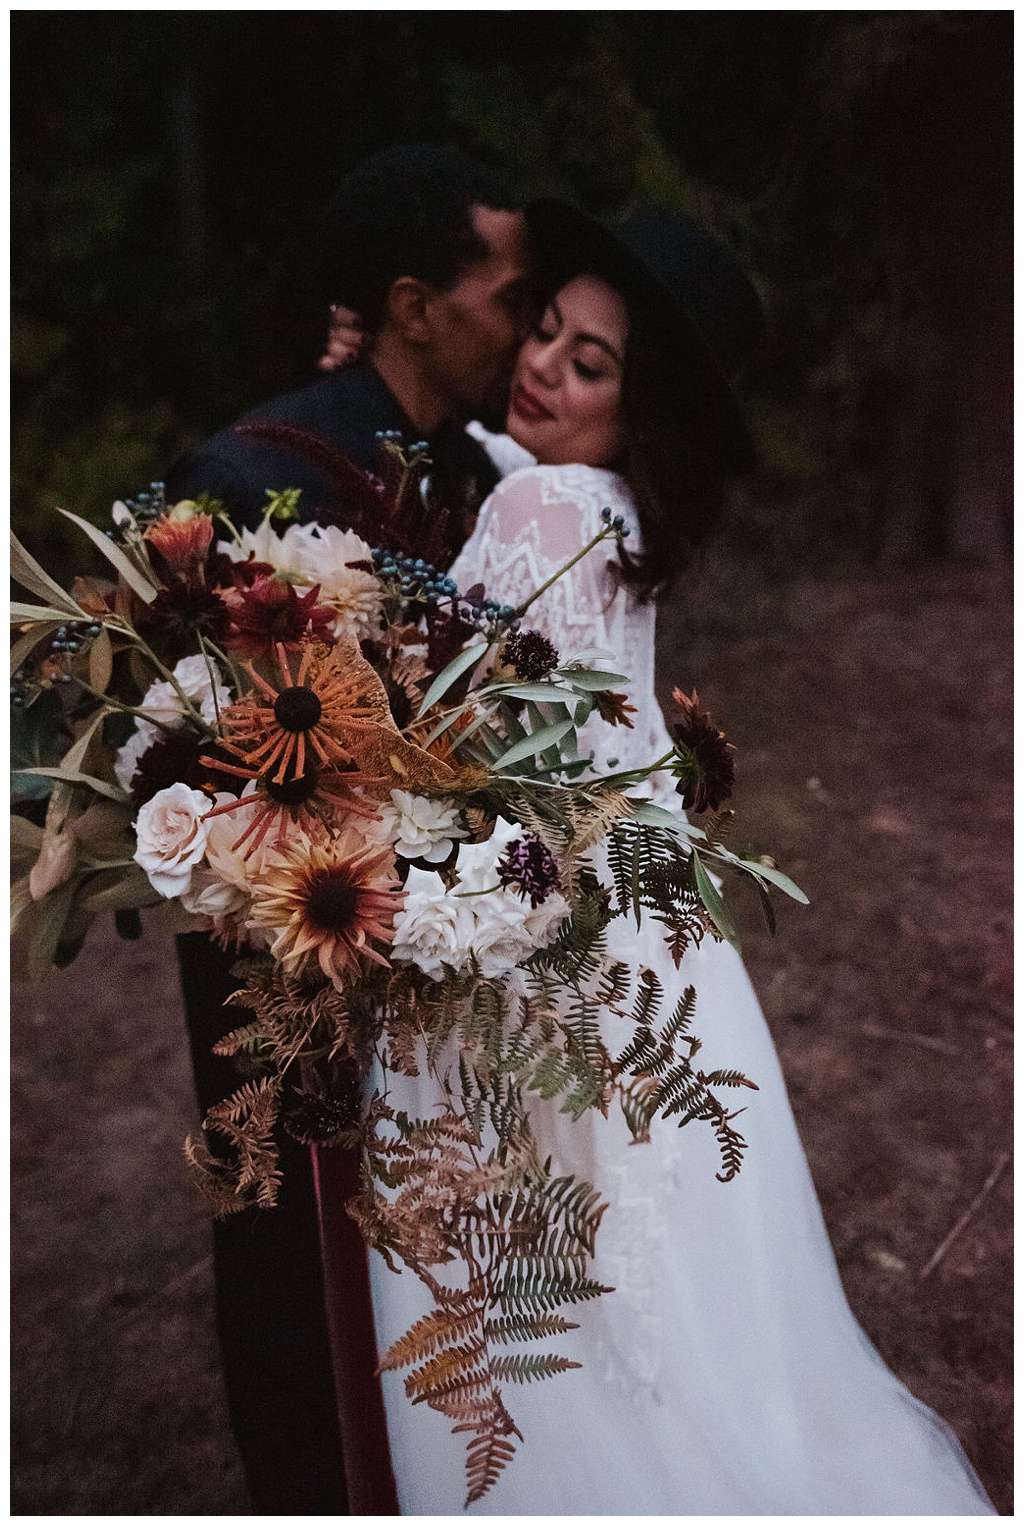 An interracial couple embracing in the woods with a fall bouquet